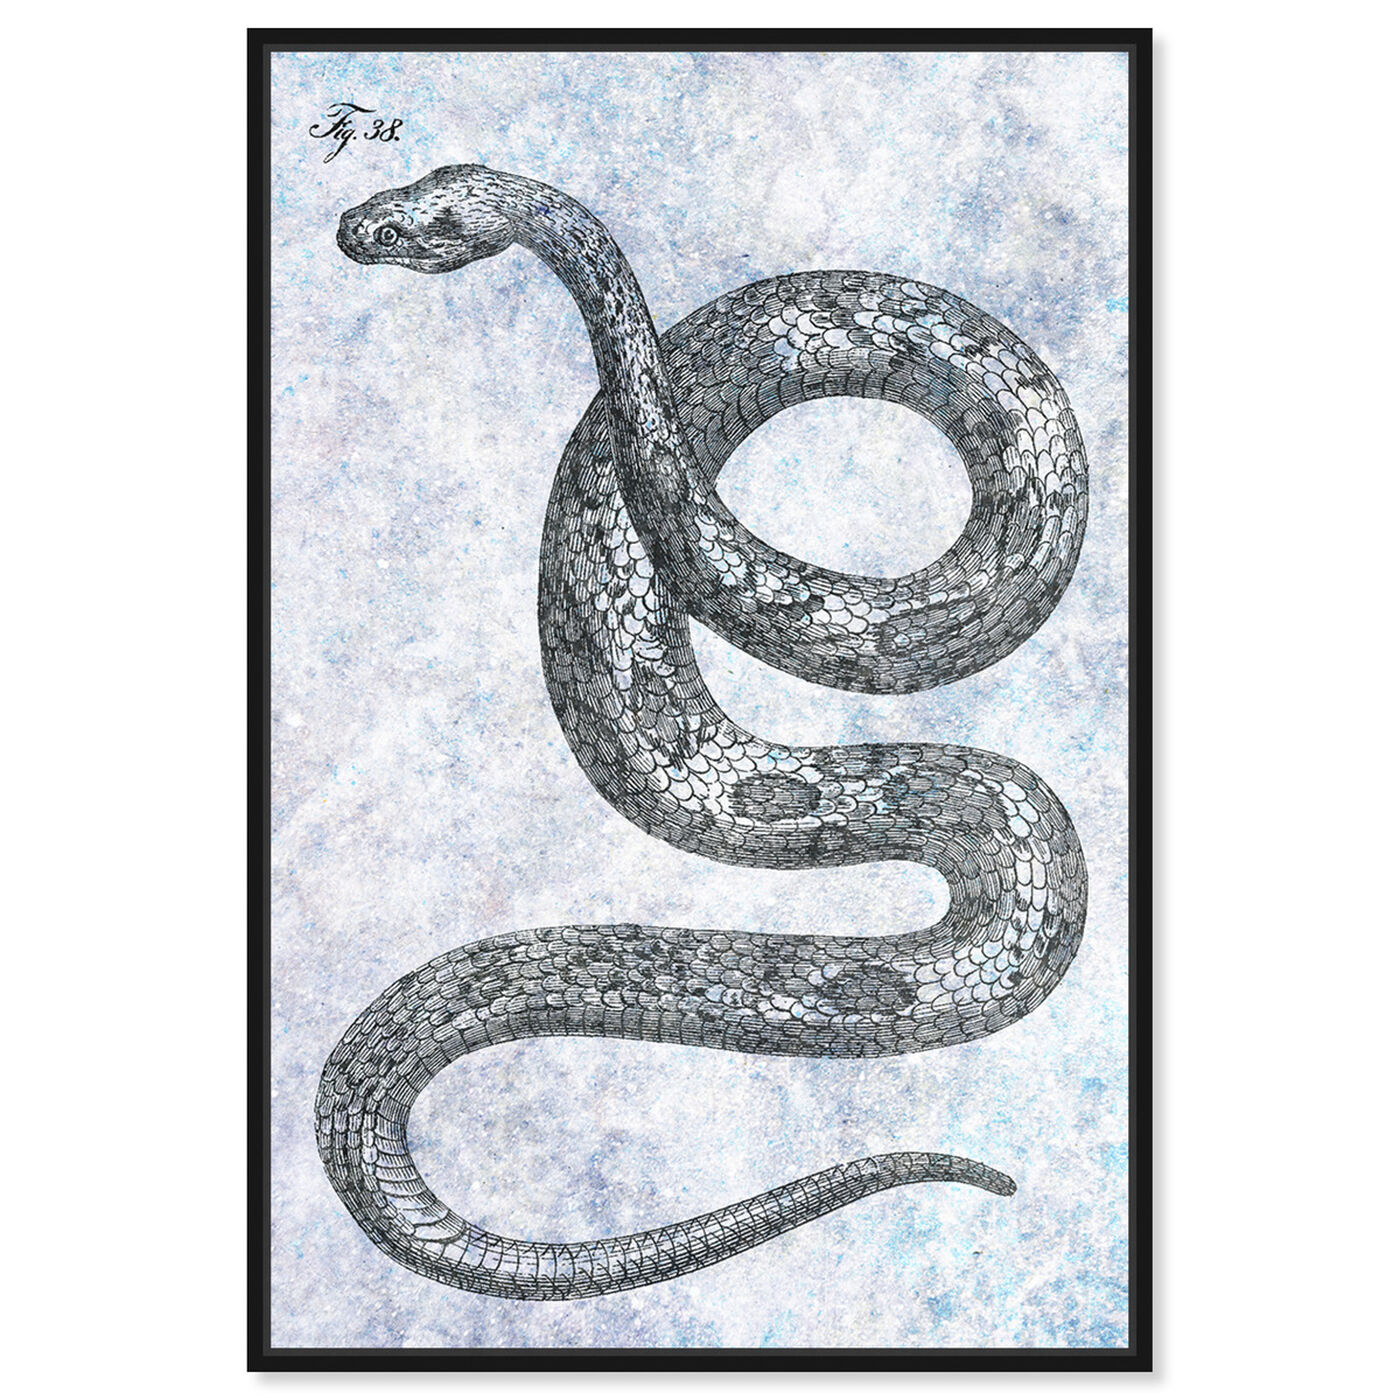 Front view of Single Snake featuring animals and zoo and wild animals art.